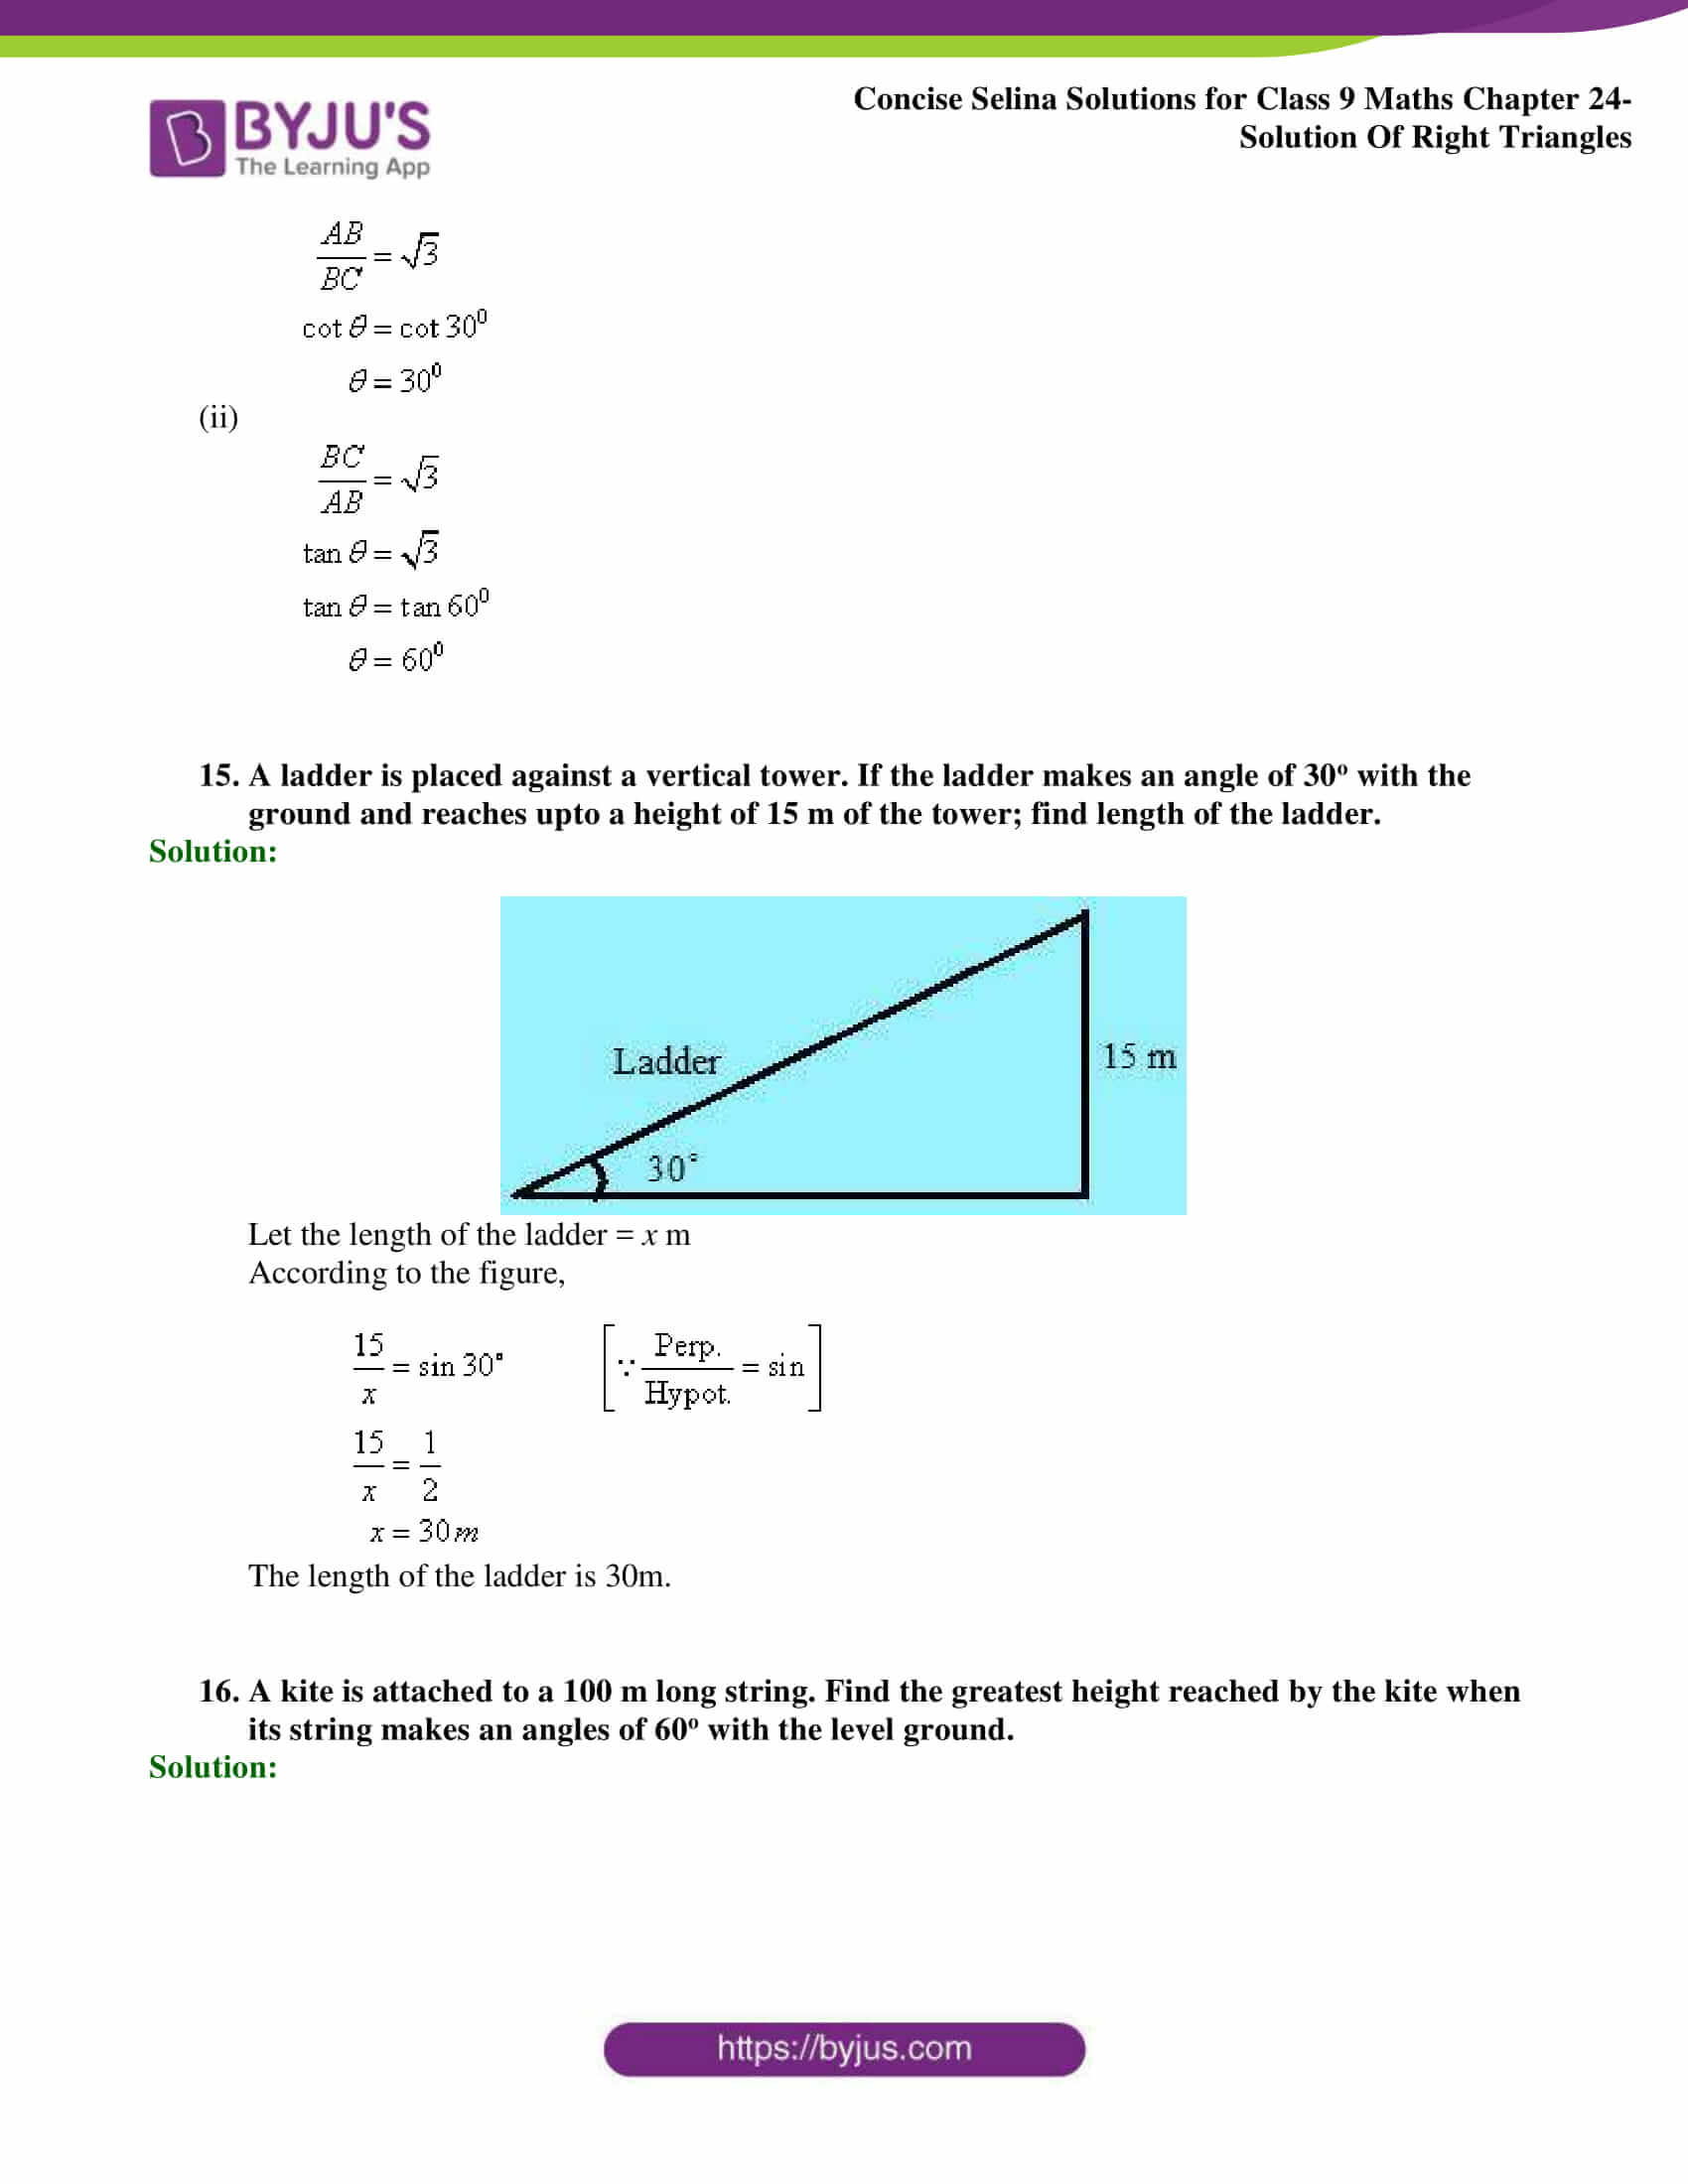 Concise Selina Solutions Class 9 Maths Chapter 24 Solution Of Right Triangles part 16